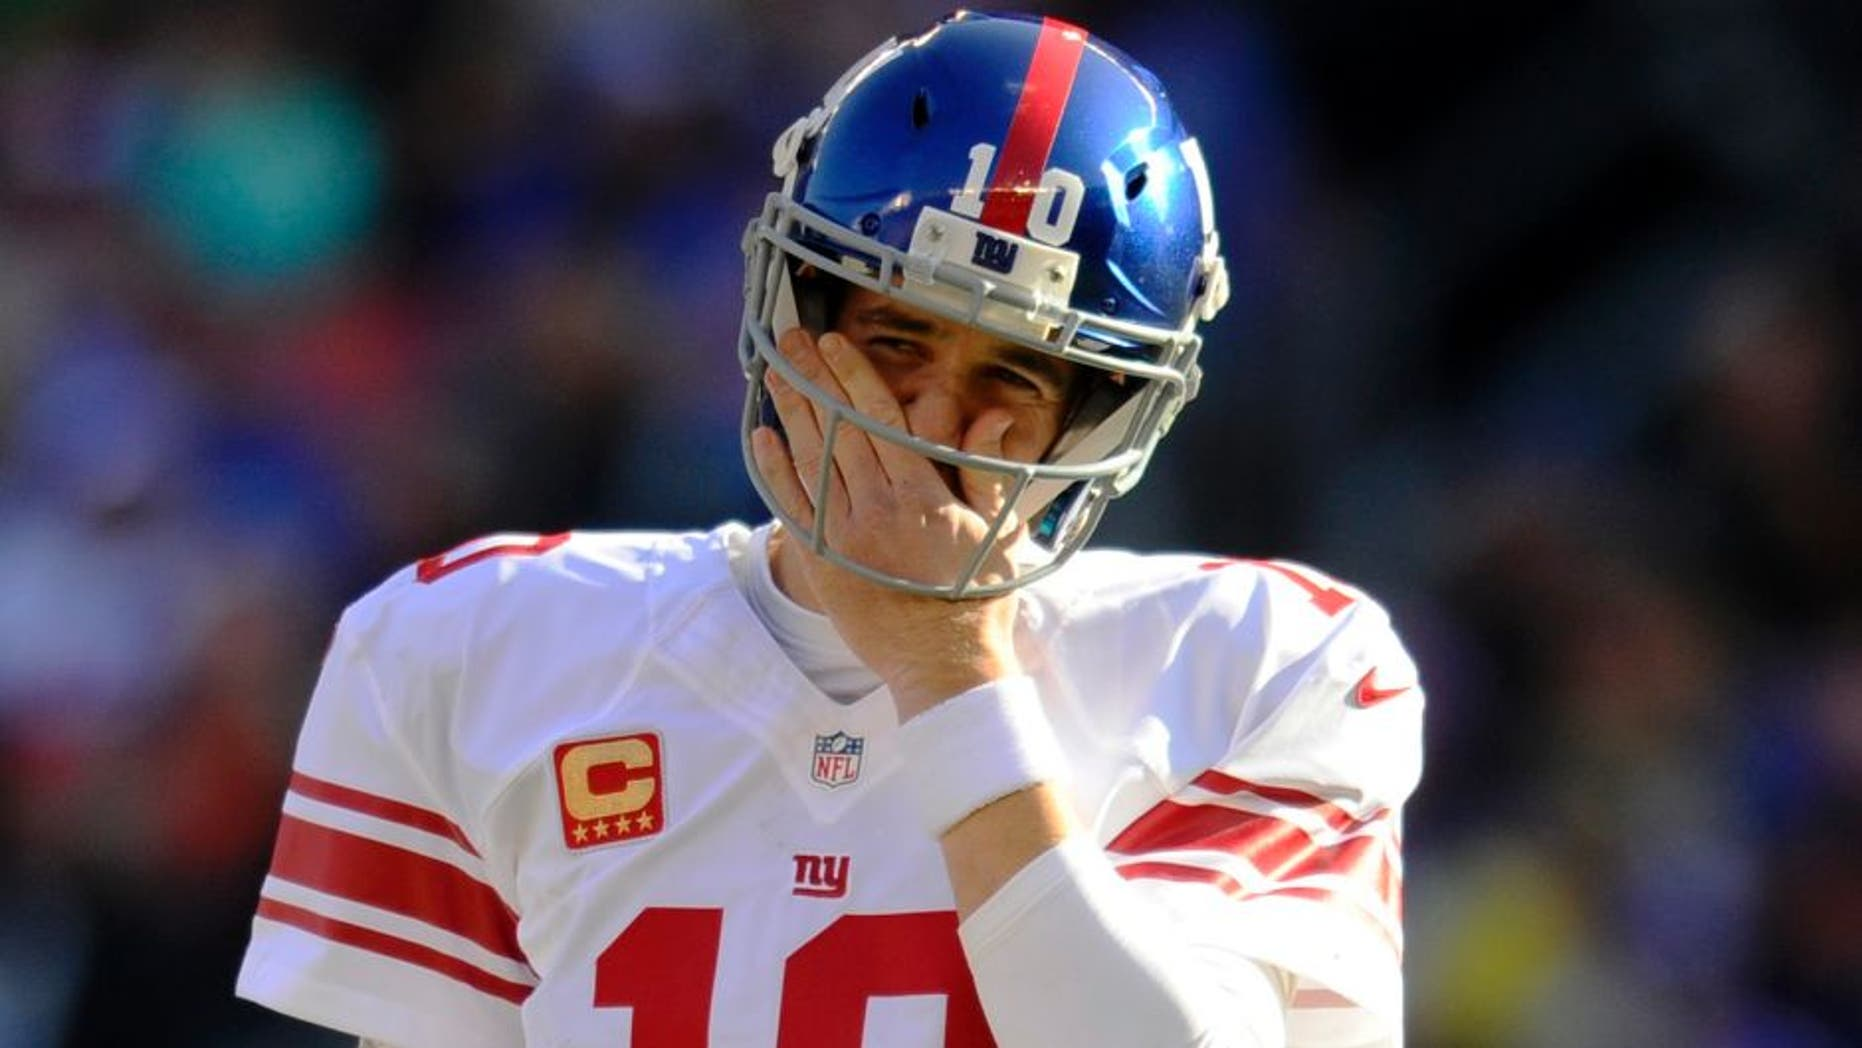 CLEVELAND, OH - NOVEMBER 27, 2016: Quarterback Eli Manning #10 of the New York Giants wipes his face as he walks onto the field during a game against the Cleveland Browns on November 27, 2016 at FirstEnergy Stadium in Cleveland, Ohio. New York won 27-13. (Photo by: Nick Cammett/Diamond Images/Getty Imges)